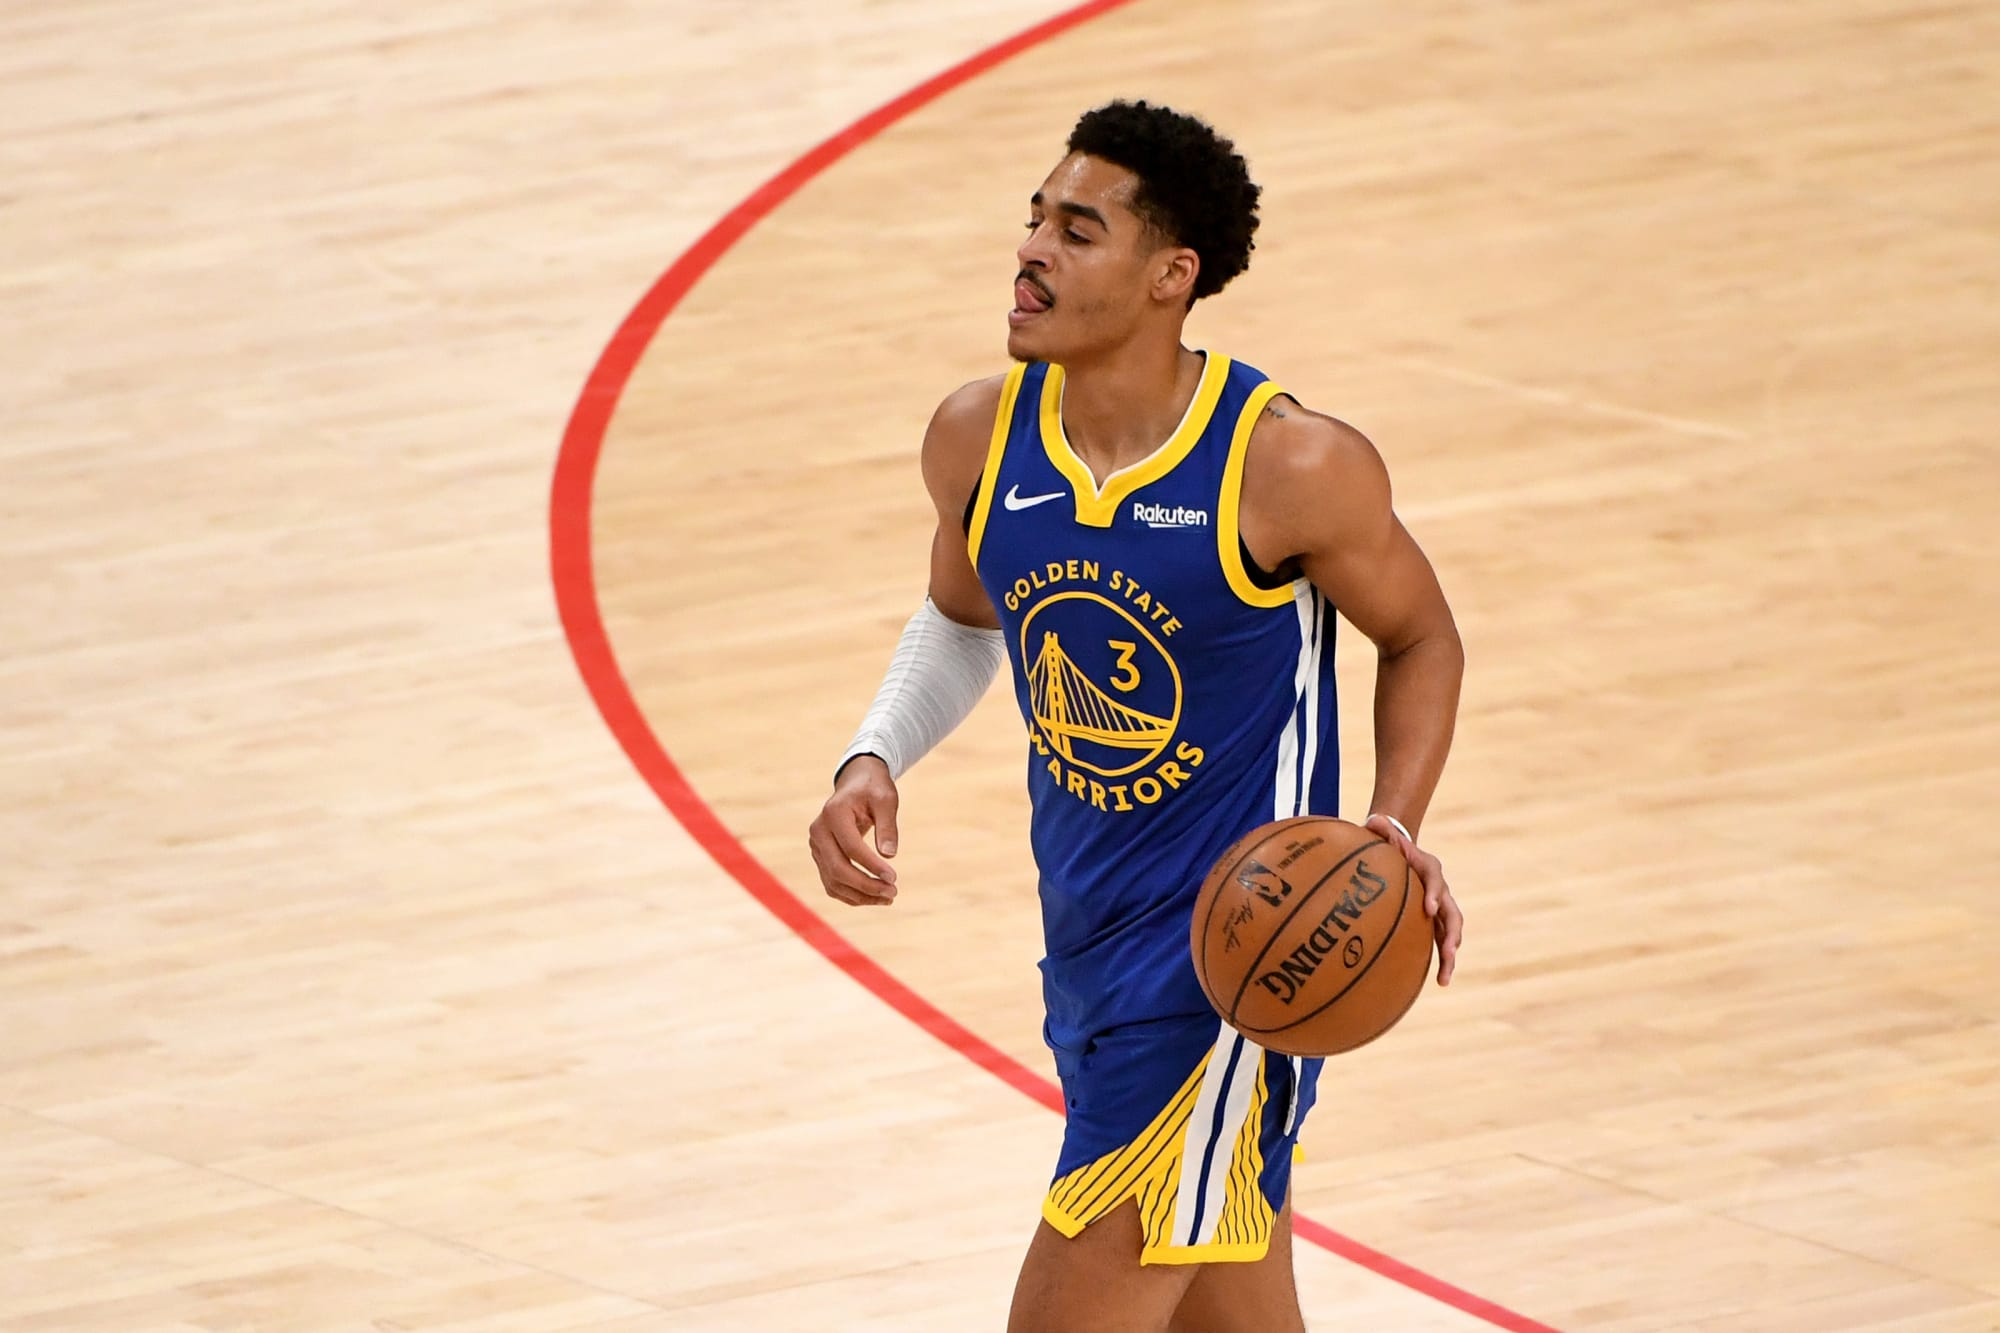 Golden State Warriors: Where is Jordan Poole's ceiling in the NBA?